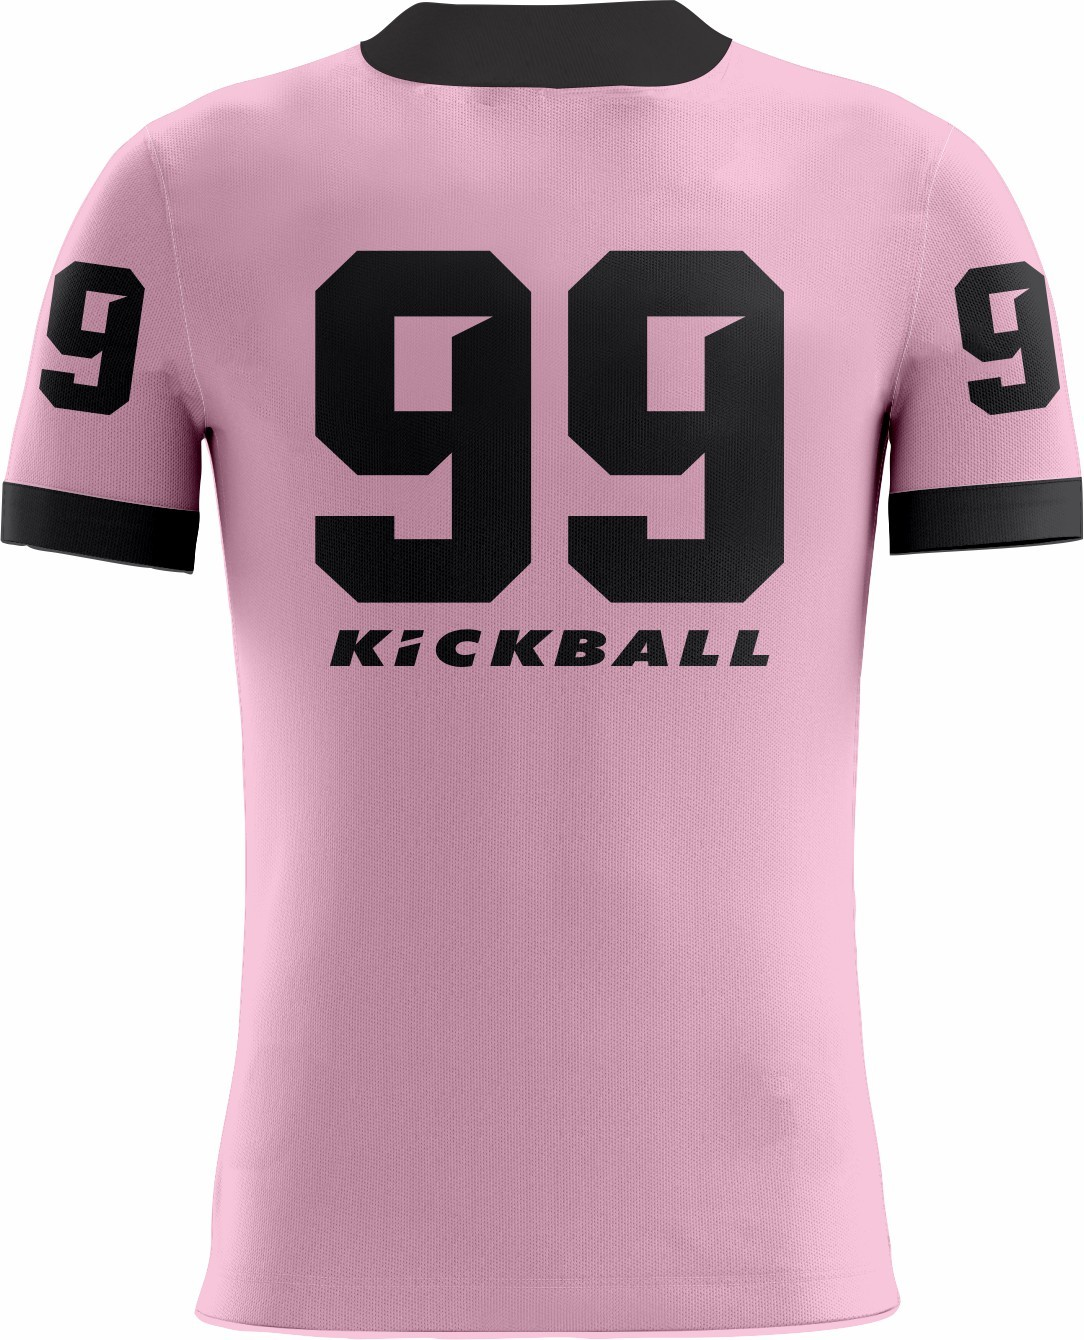 Camisa Of. Outland Soldiers Tryout Masc. Outubro Rosa